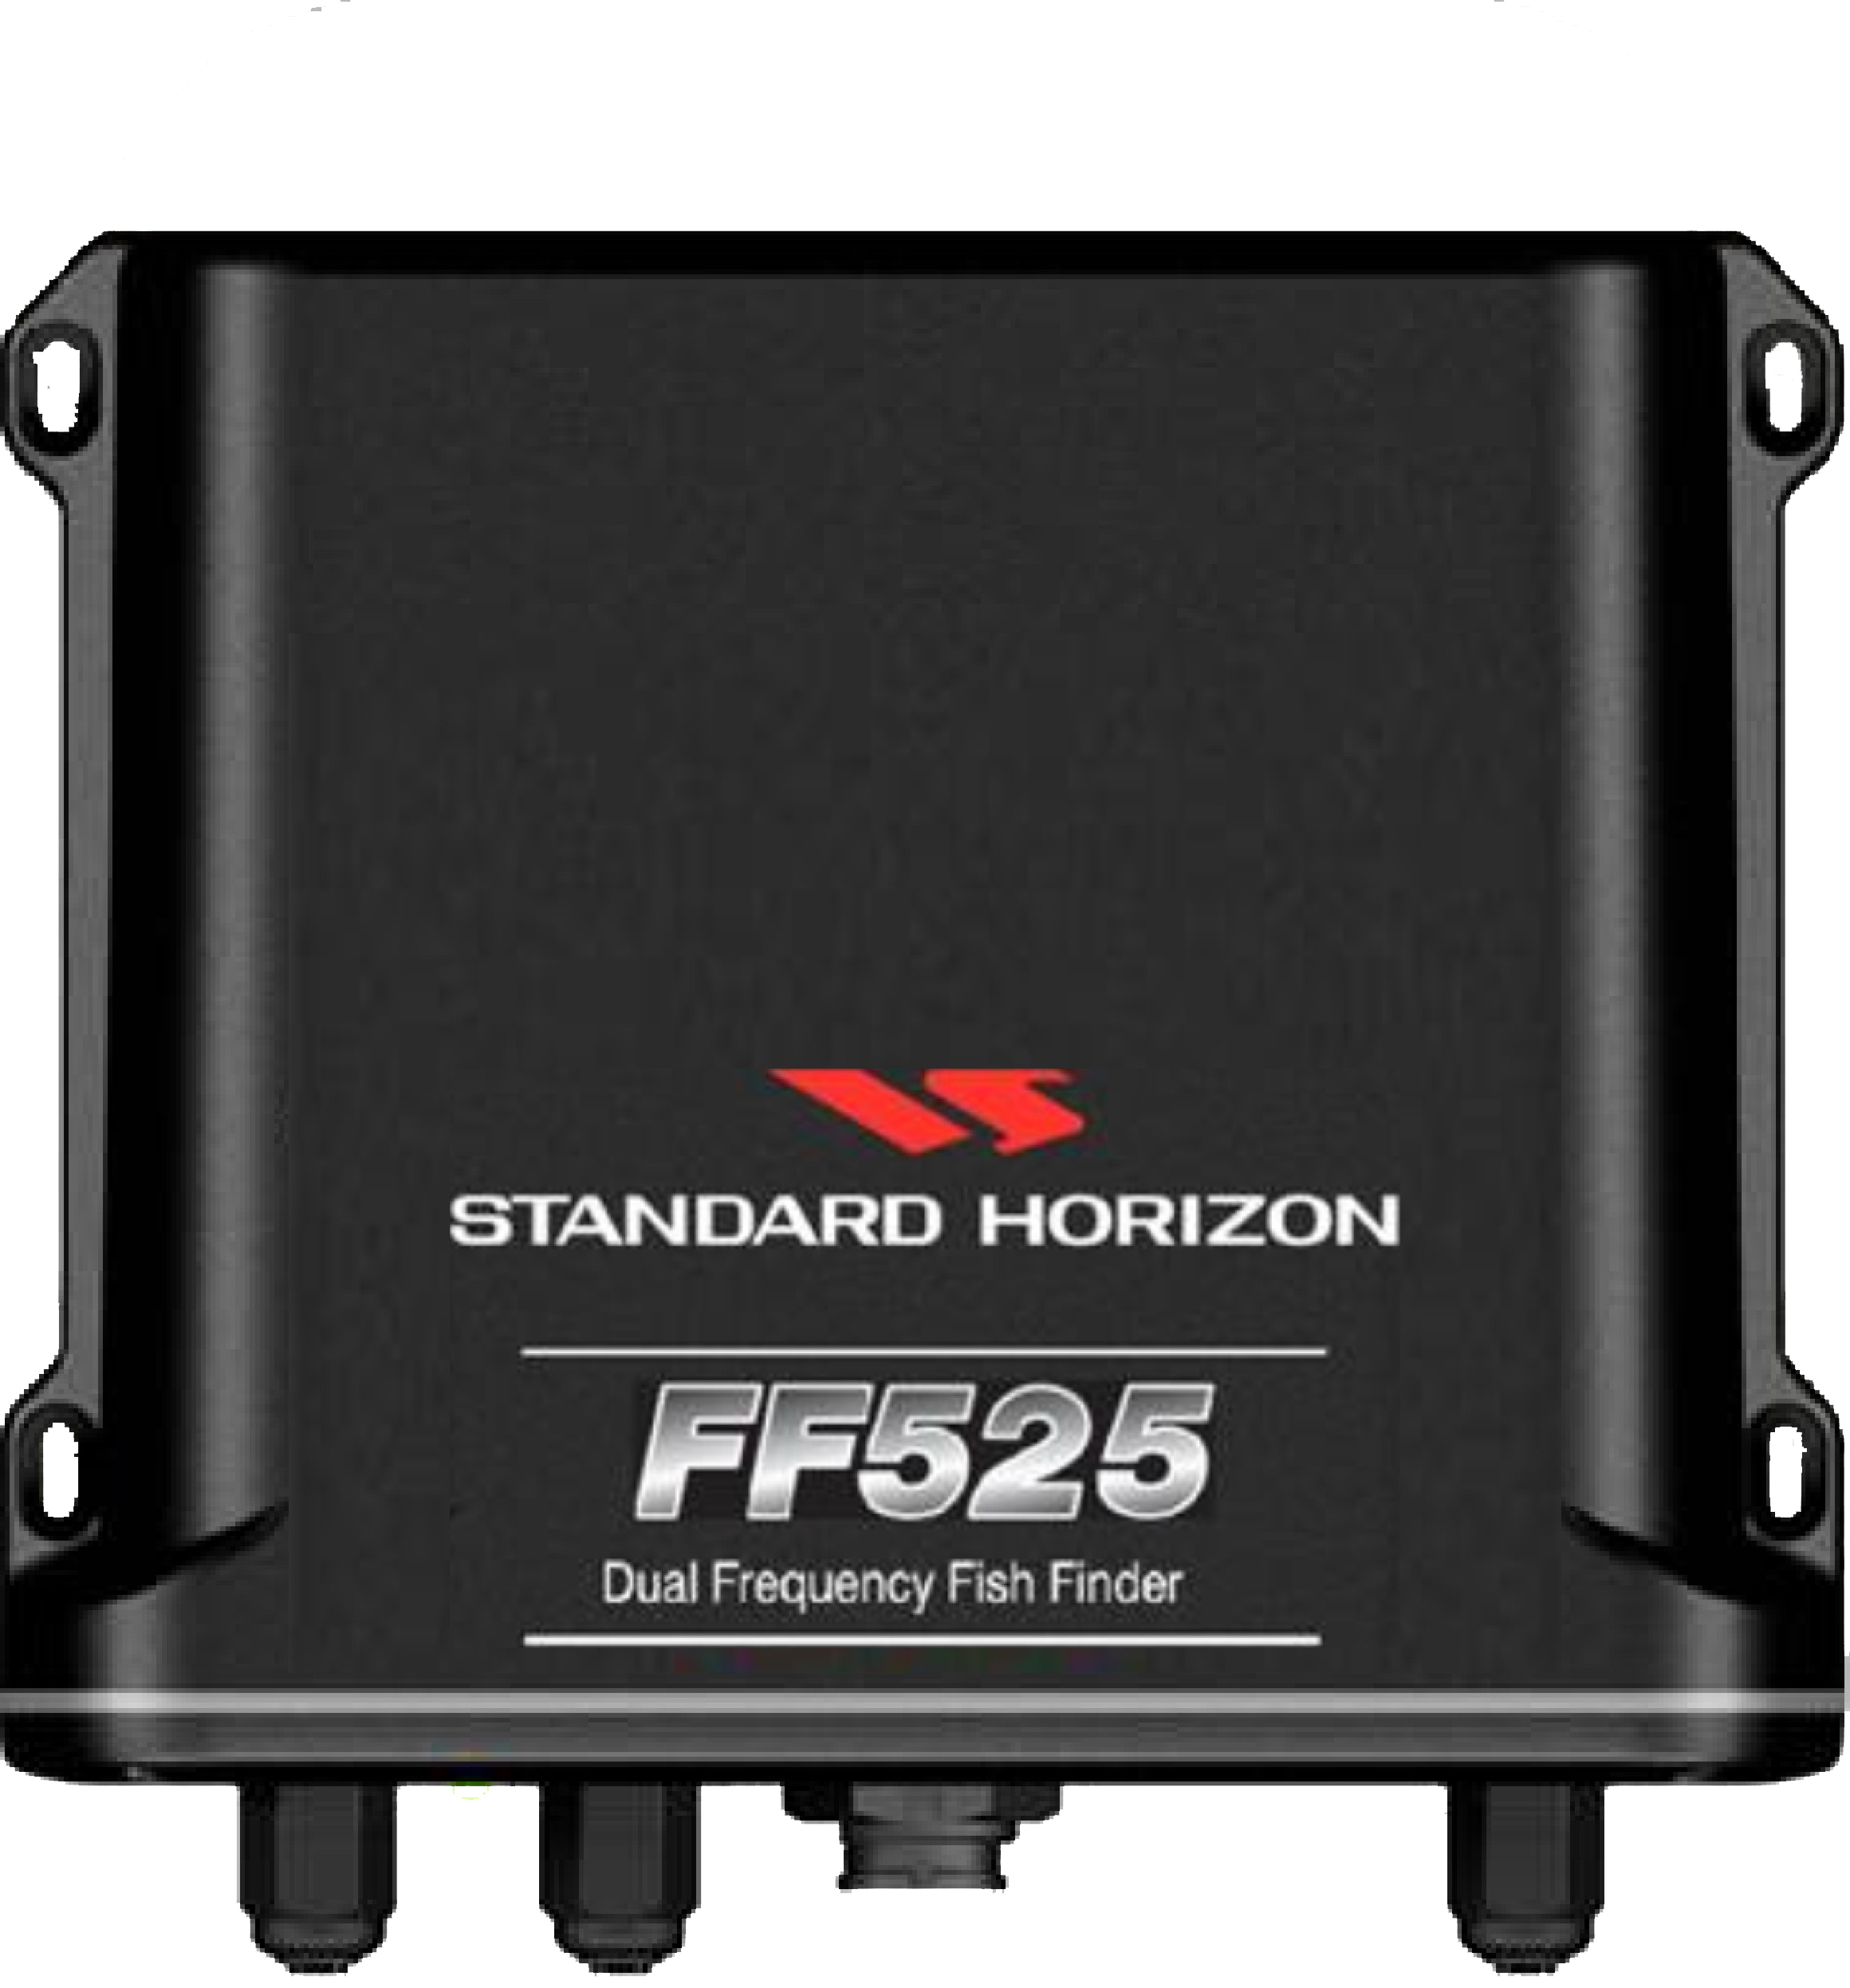 FF525 Fish Finder welcome to standardhorizon com wiring diagram for fish finder at crackthecode.co